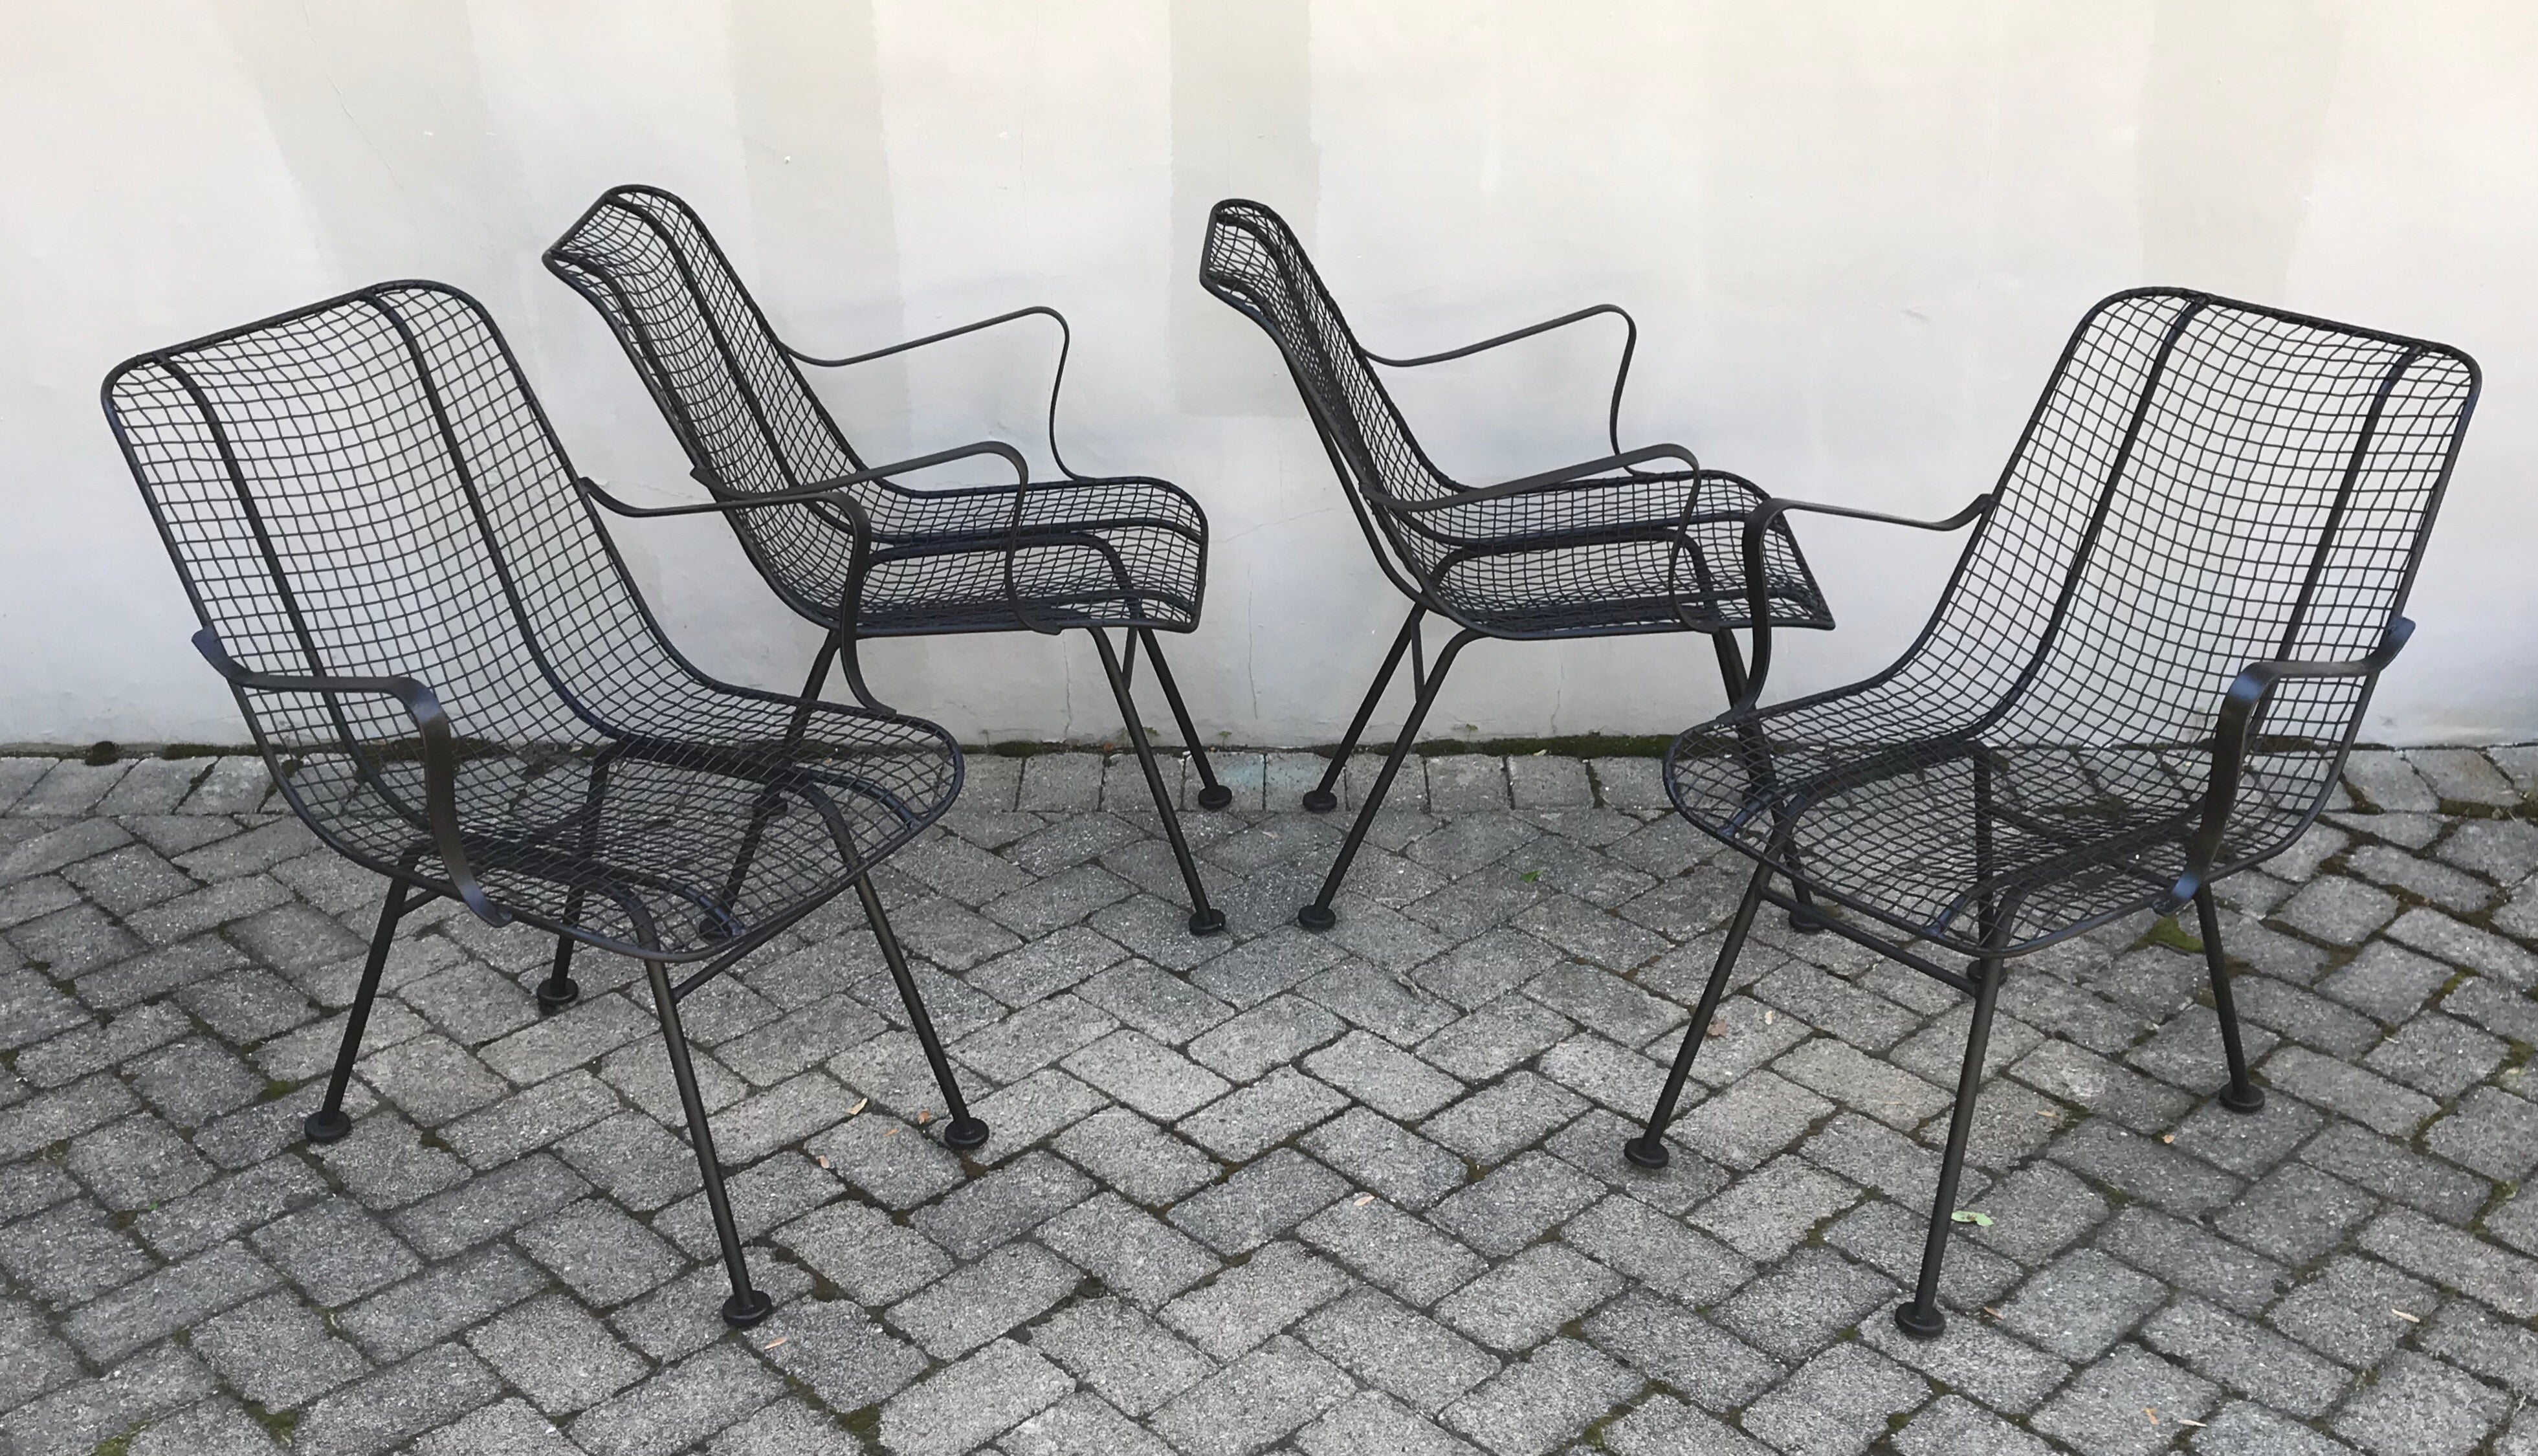 Enjoyable Set Of Four Mid Century Woodward Wrought Iron Patio Lounge Chairs Evergreenethics Interior Chair Design Evergreenethicsorg